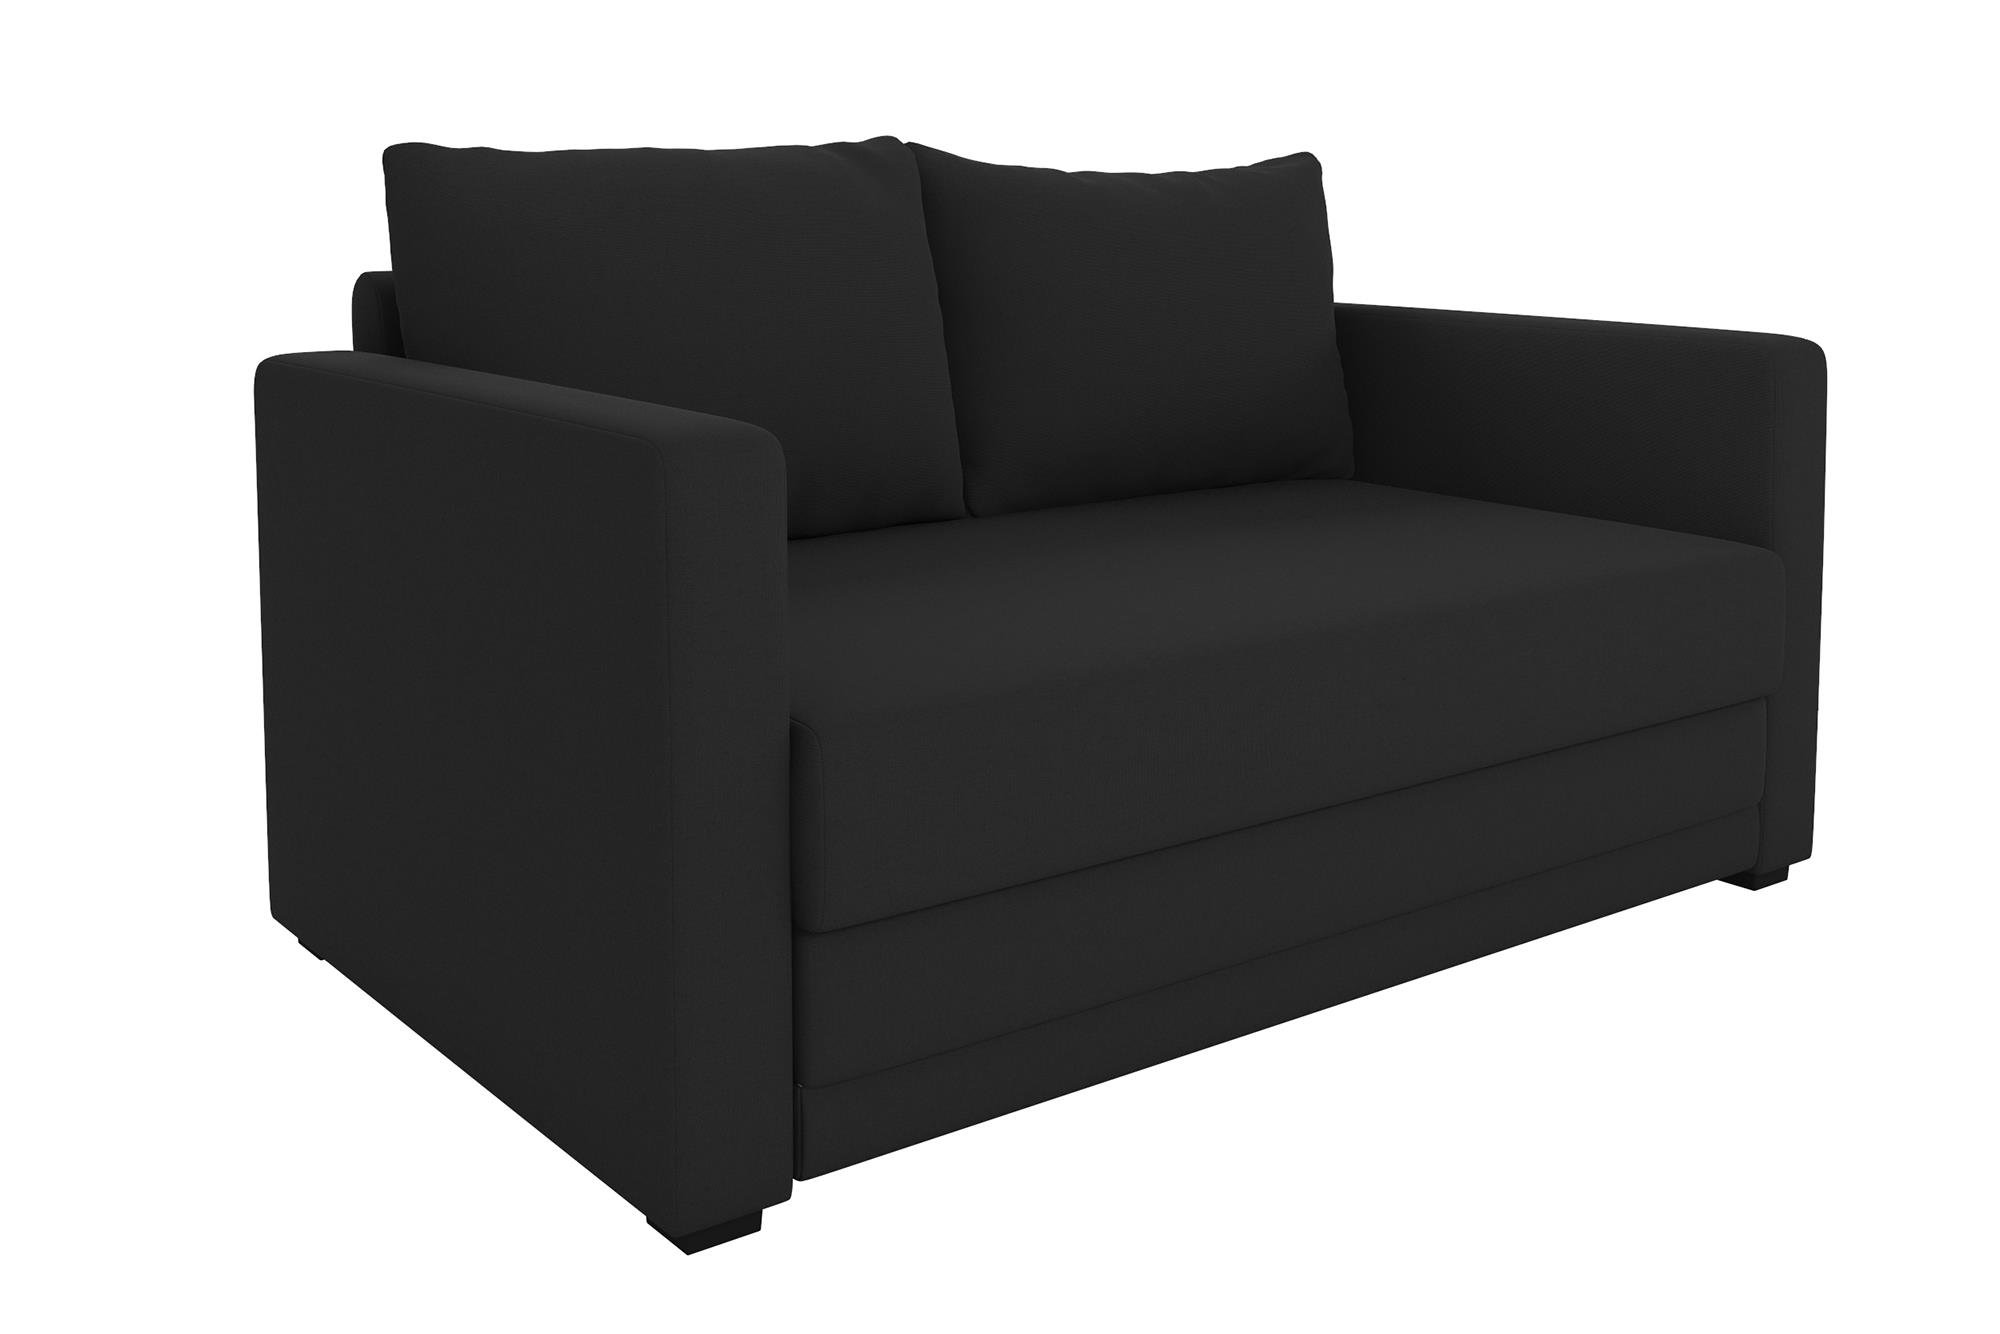 fufsack sofa sleeper lounge chair la z boy beds reviews cheap black find deals on line at get quotations modern design with wide track arms and encased coil